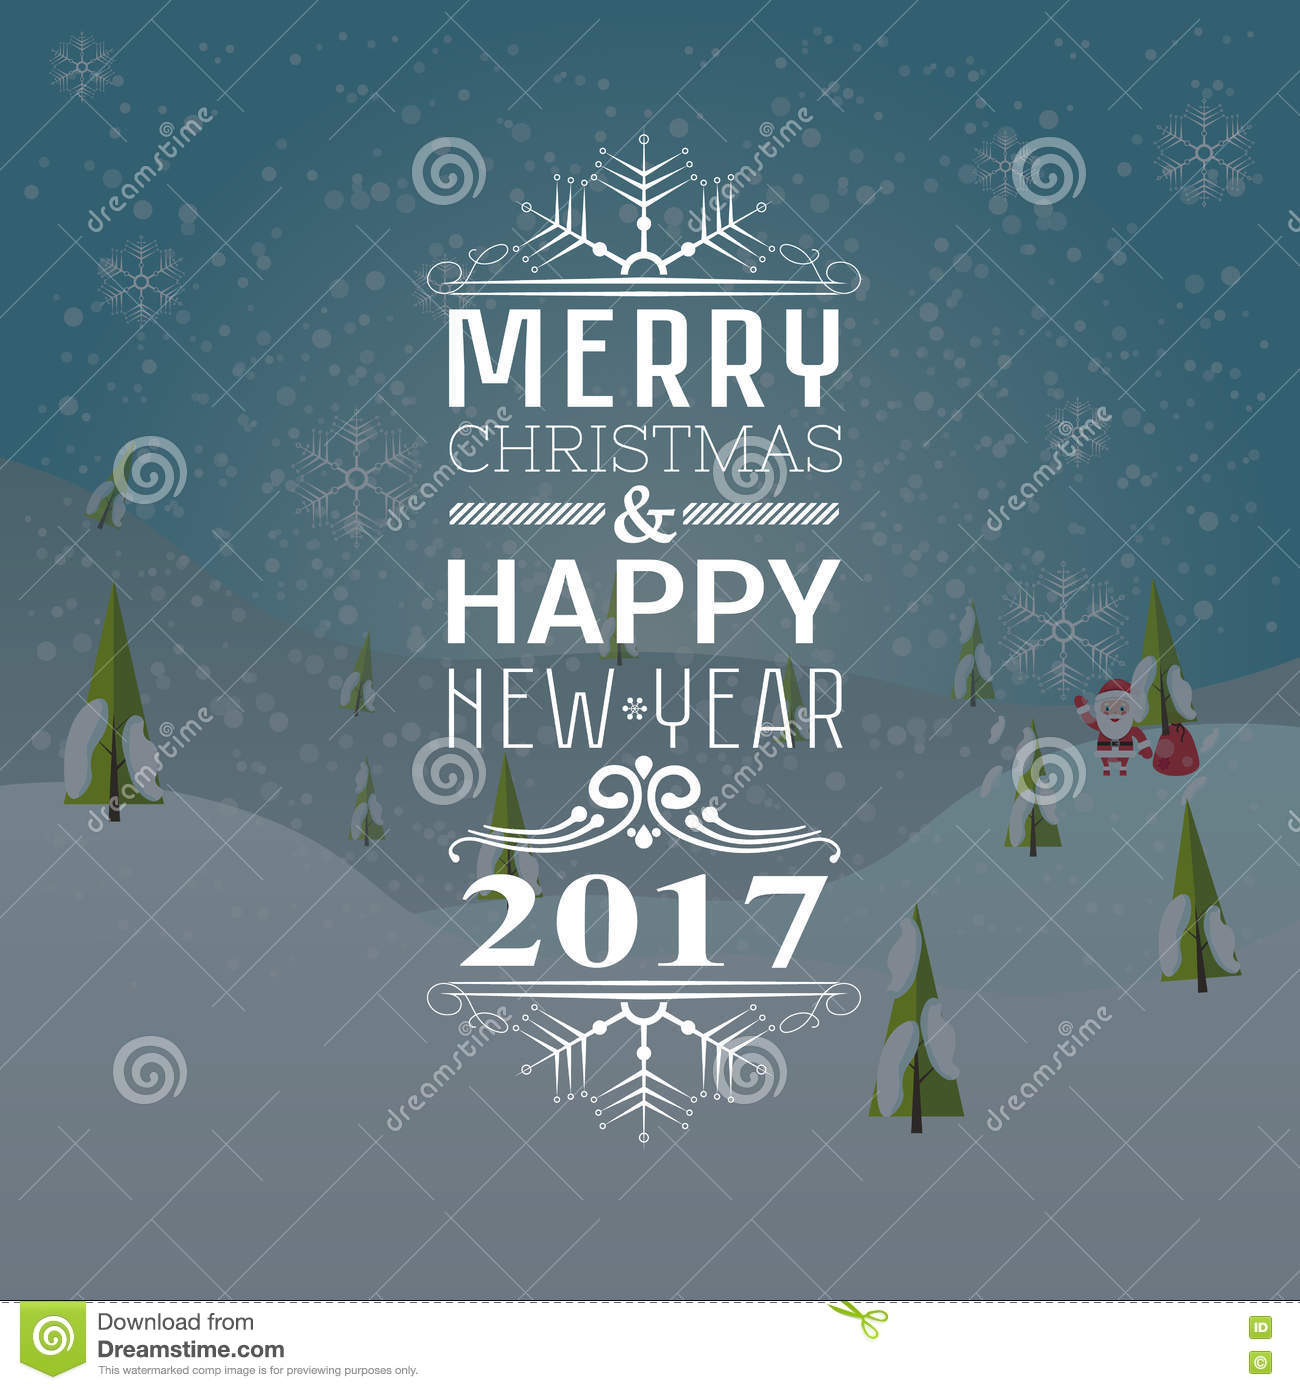 Greeting Card Or Invitation Merry Christmas And Happy New Year 2017